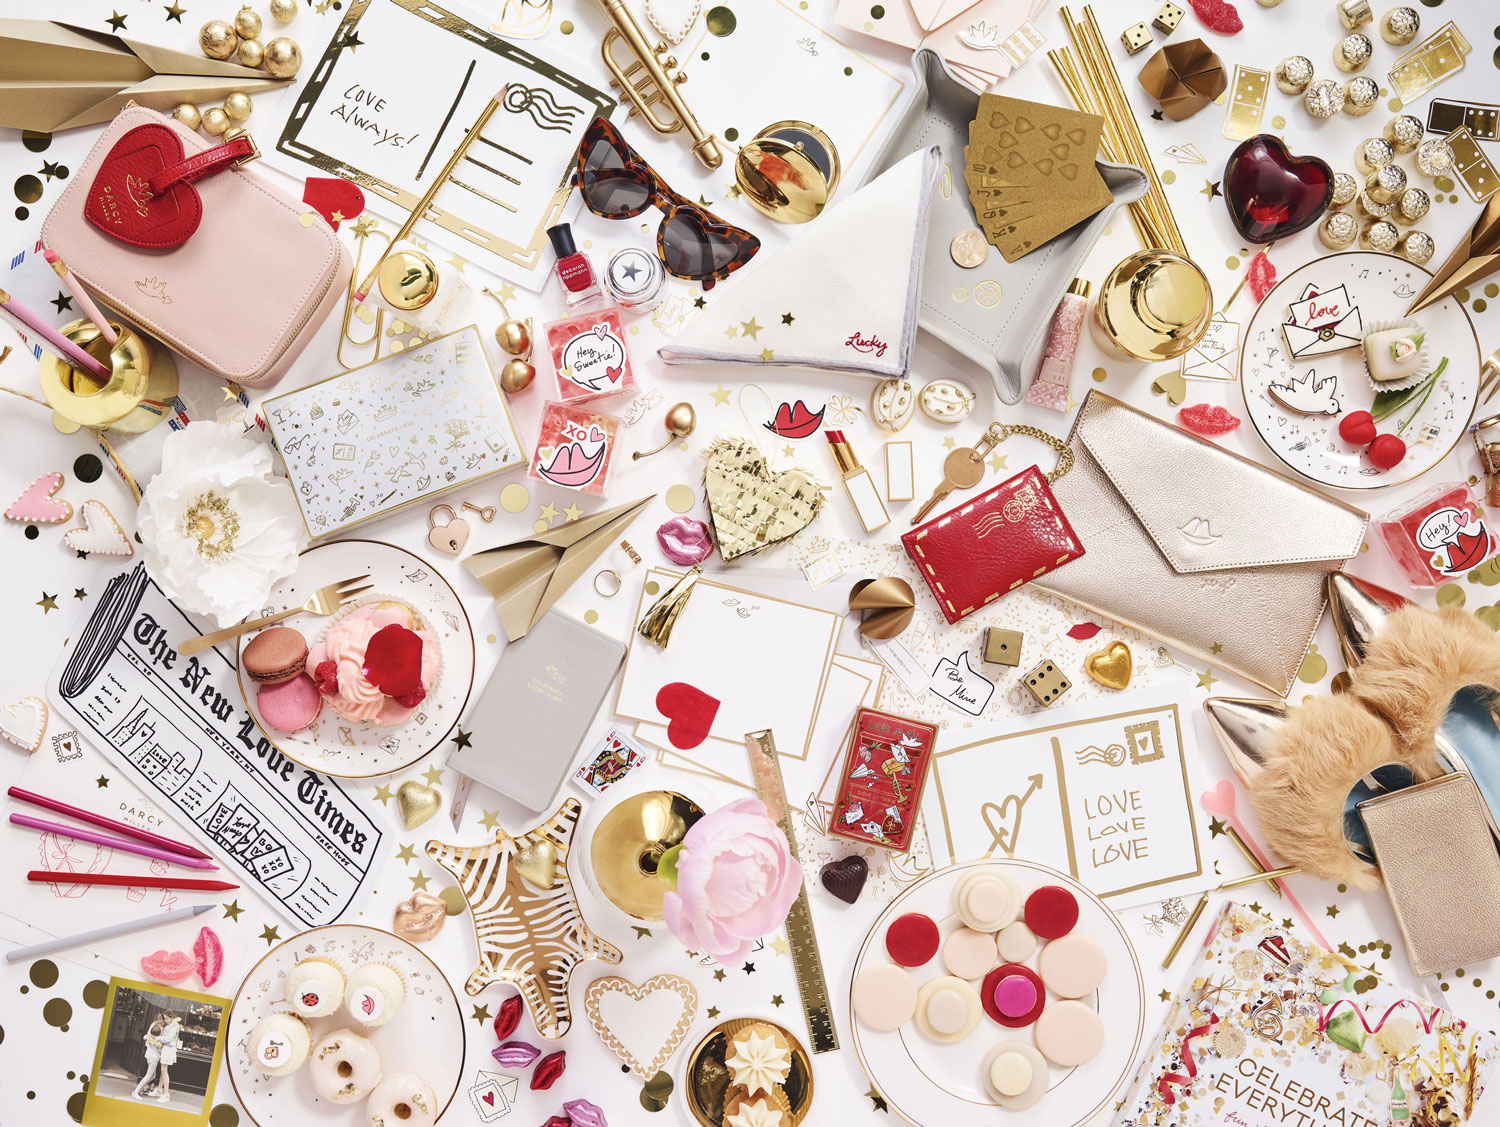 Darcy Miller celebrate love bloomingdale's pop up shop carousel valentine's day gift ideas